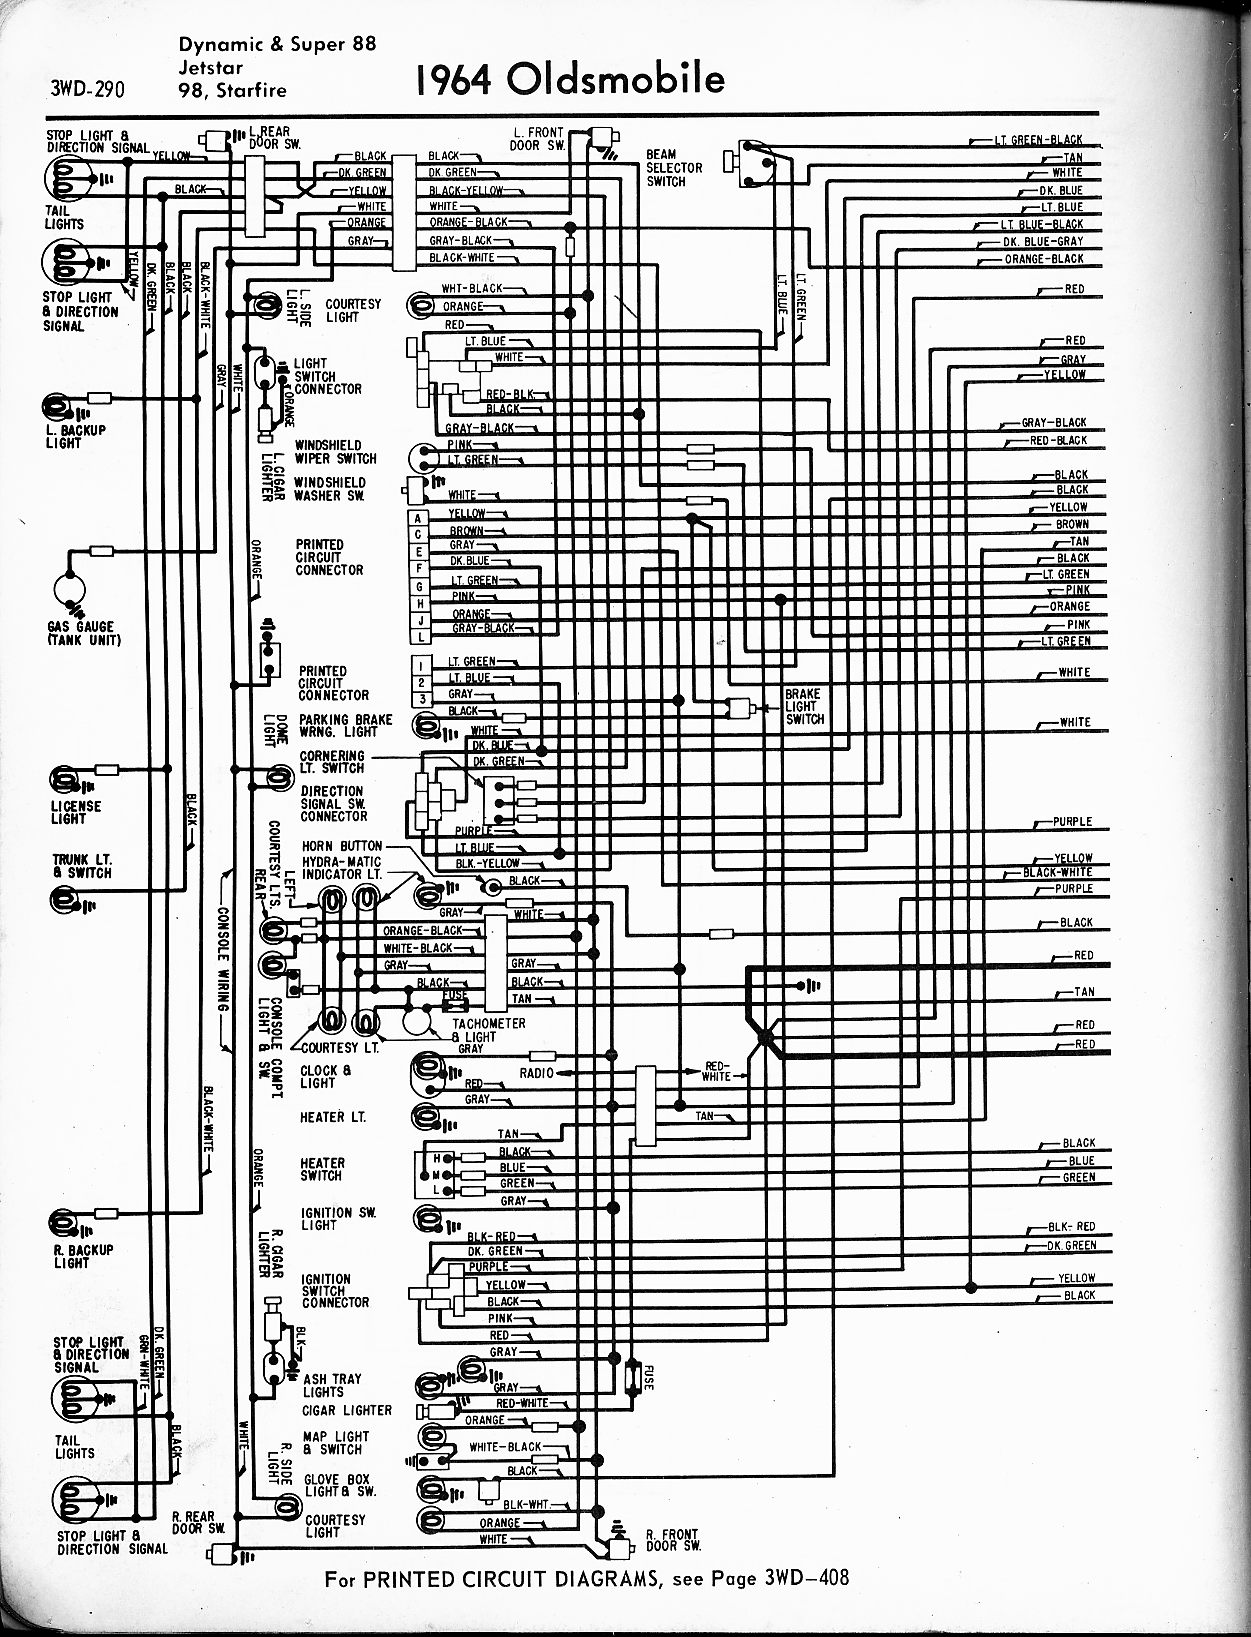 1998 oldsmobile wiring diagrams wiring library 1951 Chevy Truck Wiring Diagram oldsmobile wiring diagrams the old car manual project rh oldcarmanualproject com 1998 oldsmobile cutlass engine diagram